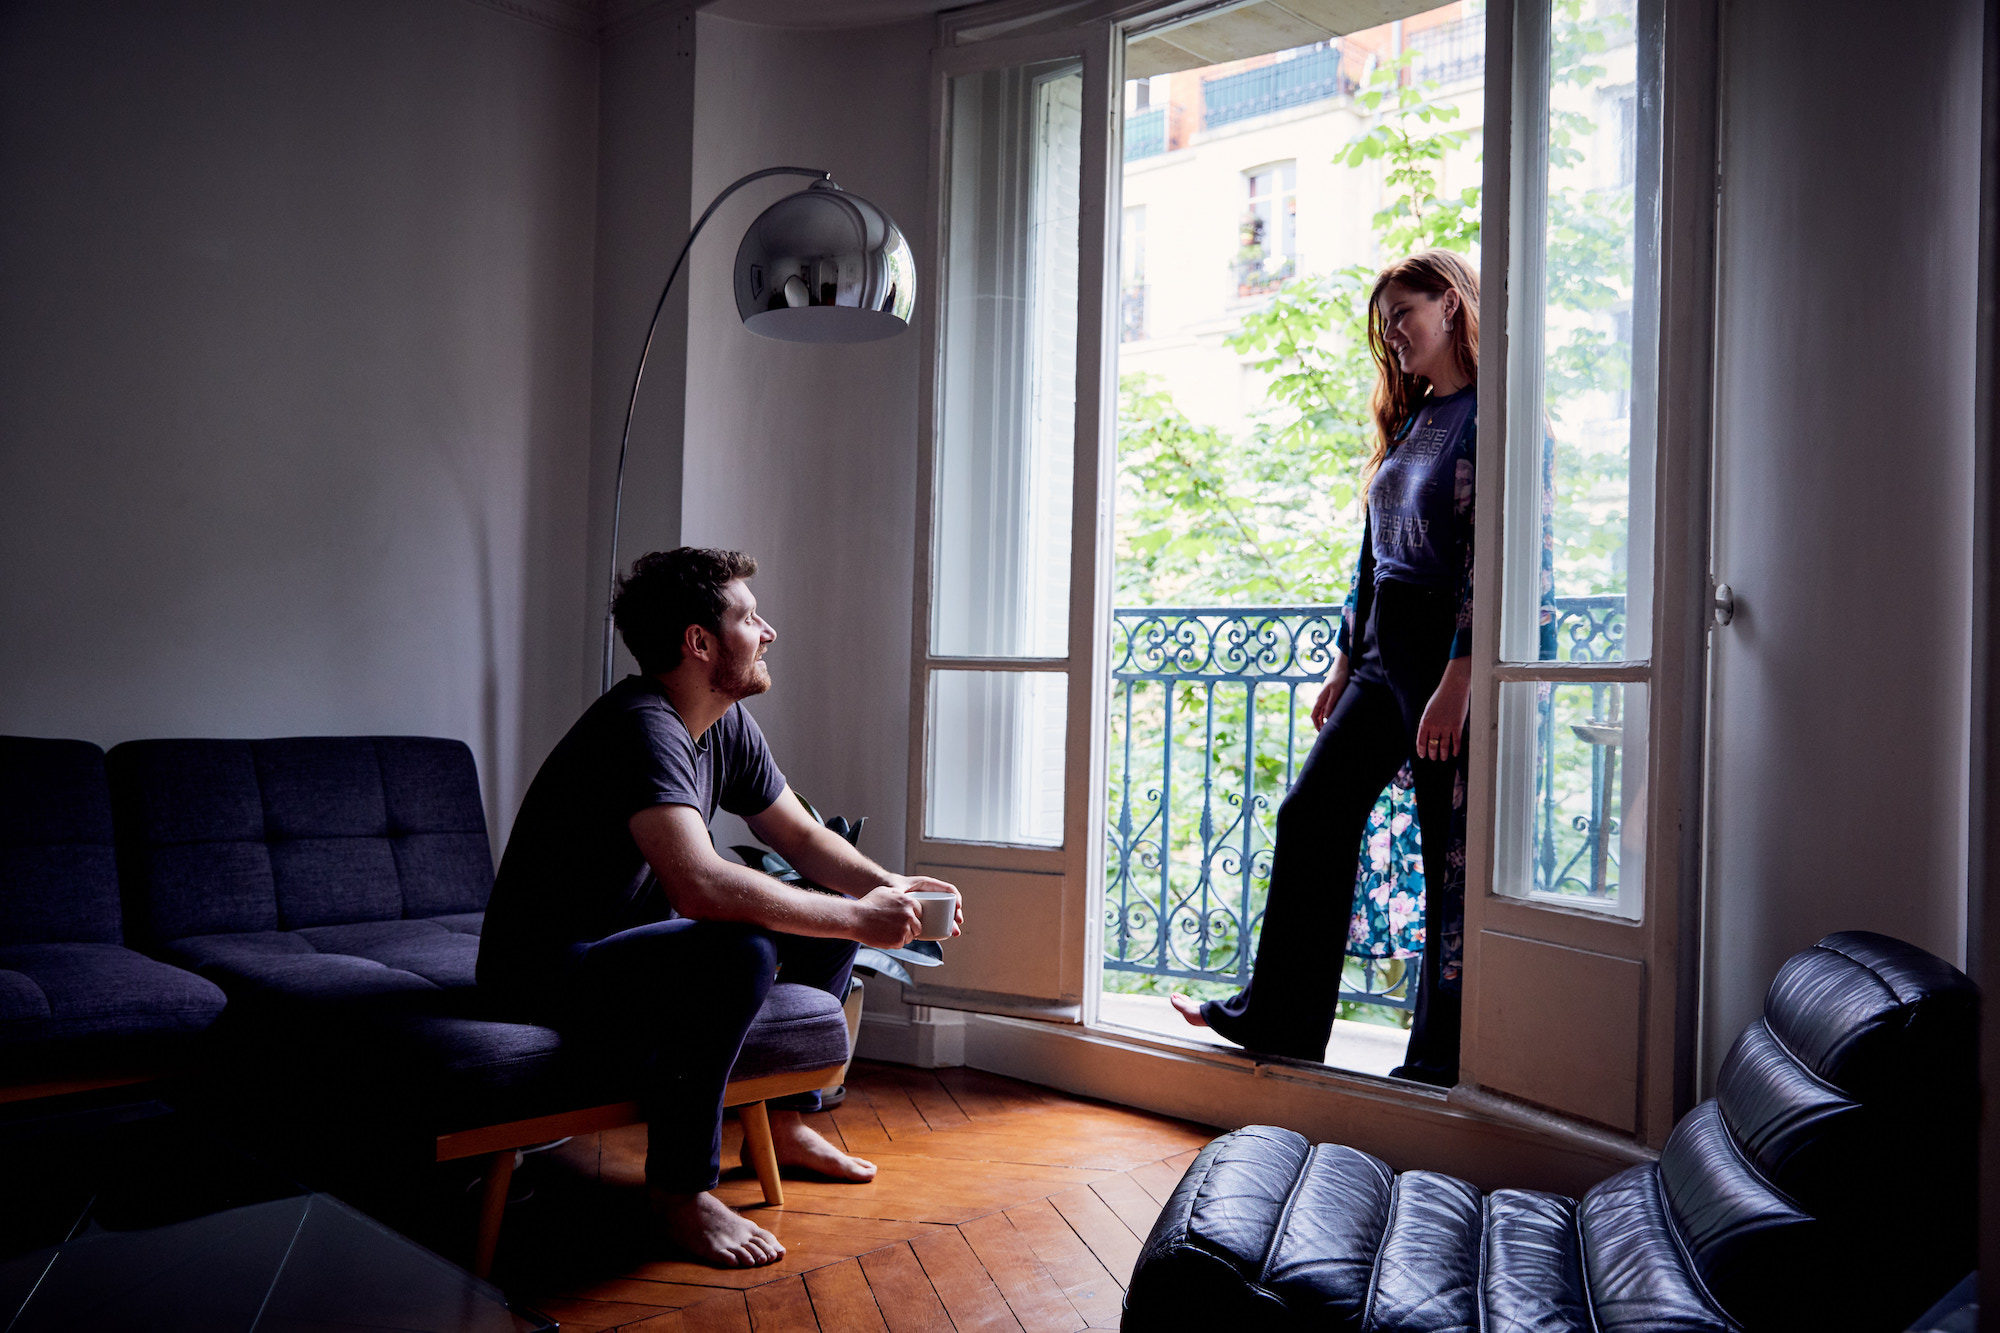 A young man and woman living in Paris and talking in their apartment which has wooden floors and a window that opens onto a balcony.